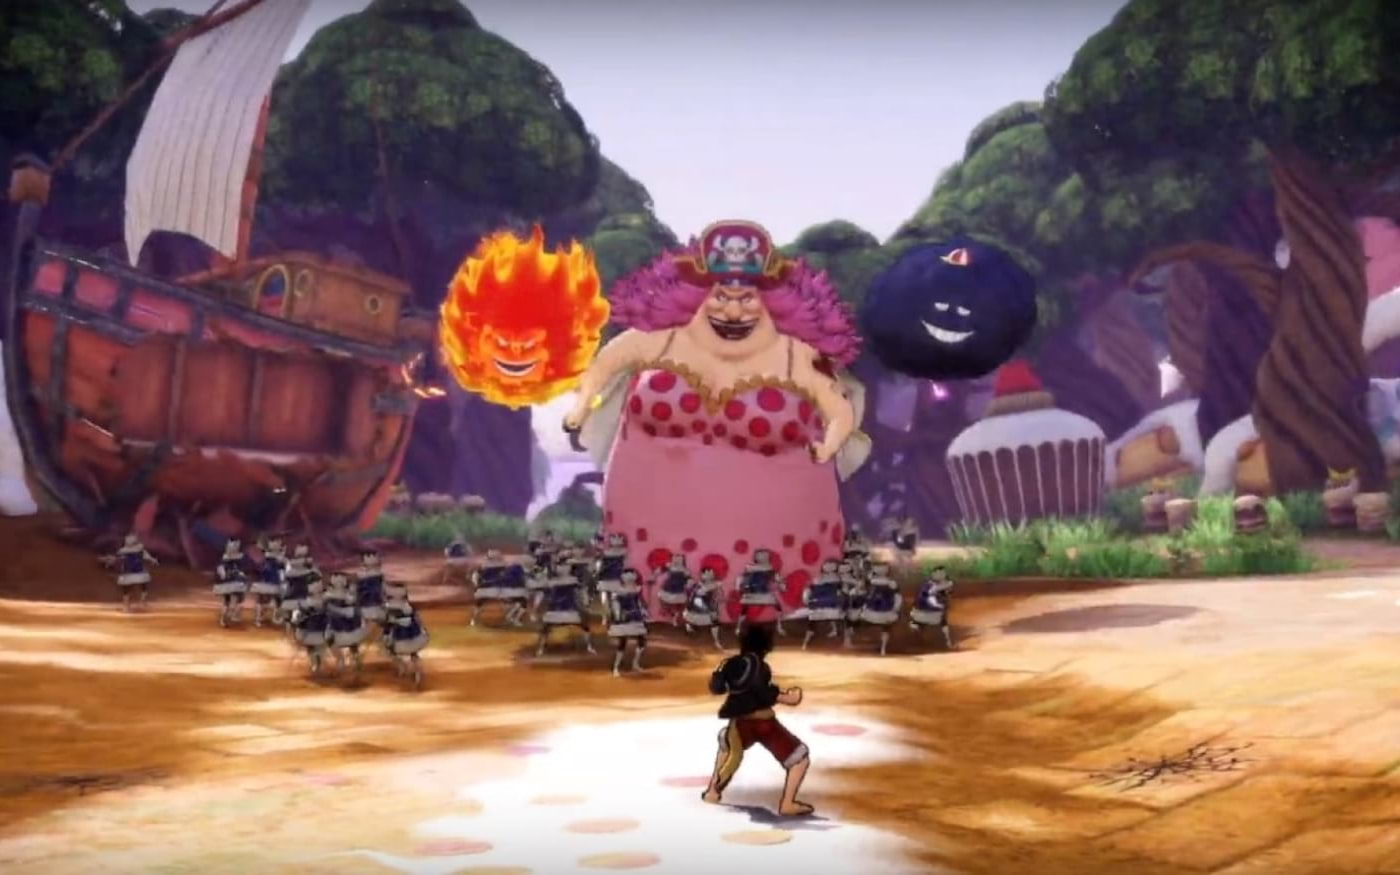 [Gamescom 2019] One Piece Pirate Warriors 4 ganha novo trailer!